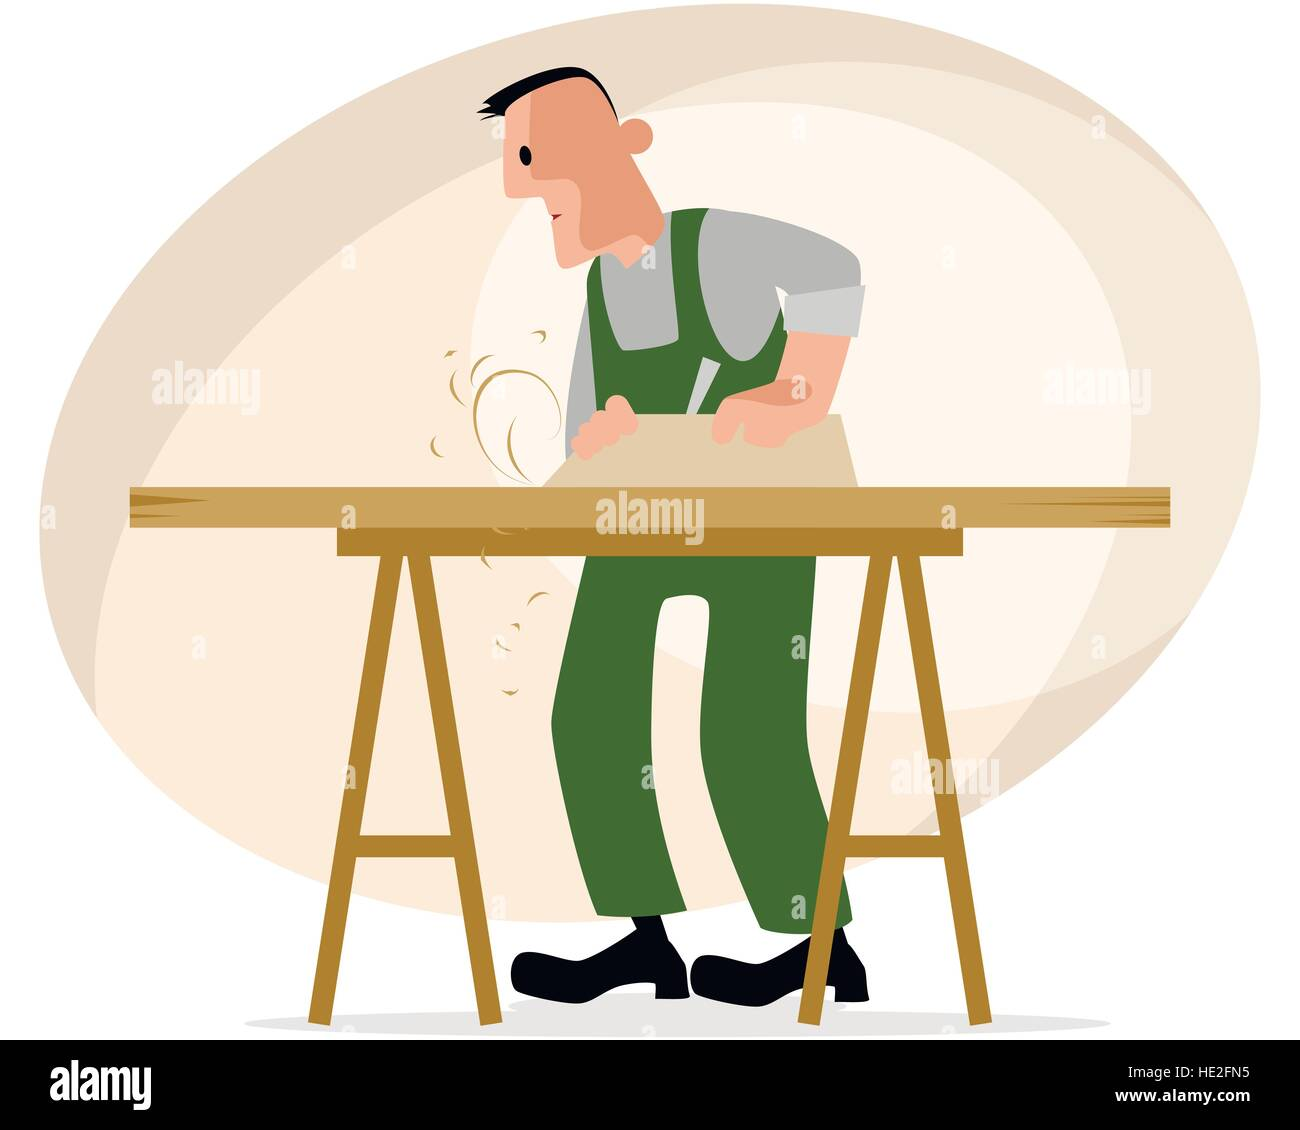 Vector illustration of a carpenter and crafting table - Stock Vector